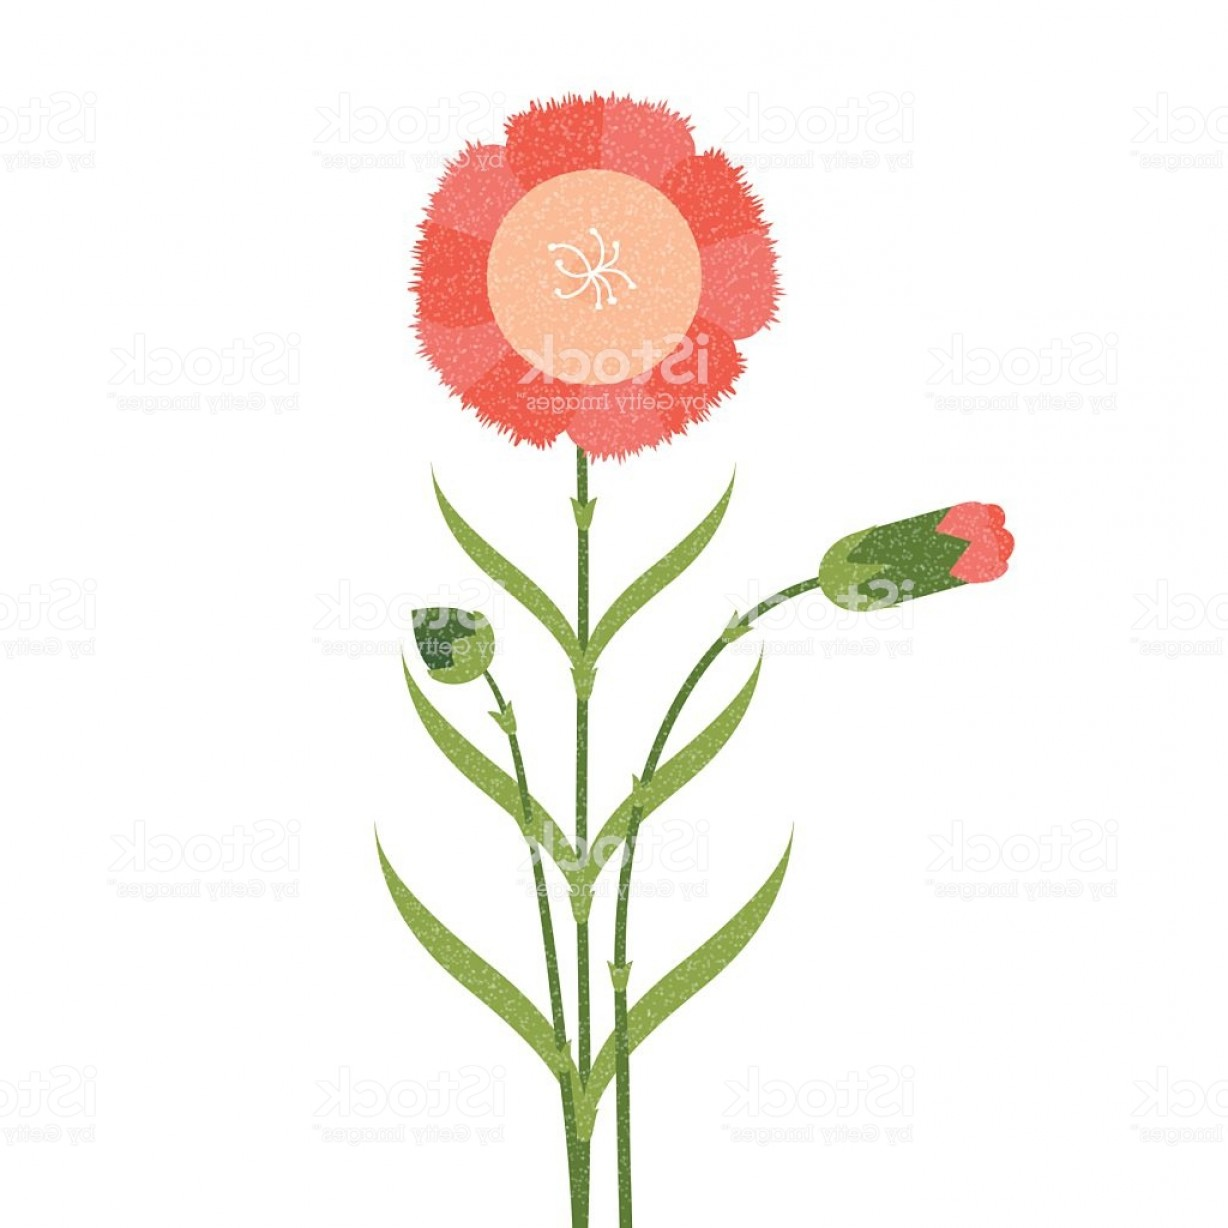 Vector Image Of A Budding Flower: Blooming And Budding Carnation Flower Gm